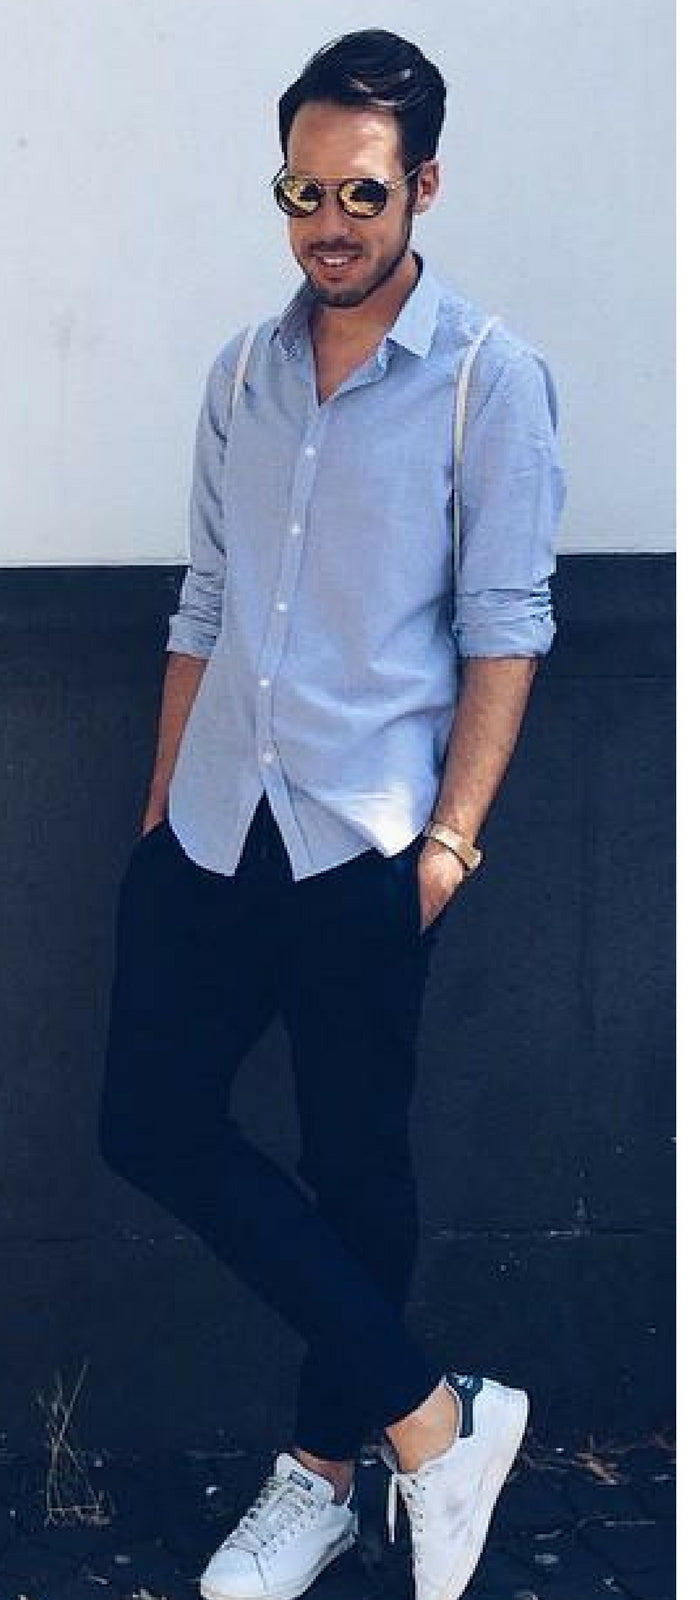 72e773e47e7 Light Blue Chambray Shirt + Navy Chinos + White Sneakers + Sunglasses.  Summer Outfit Ideas For Men